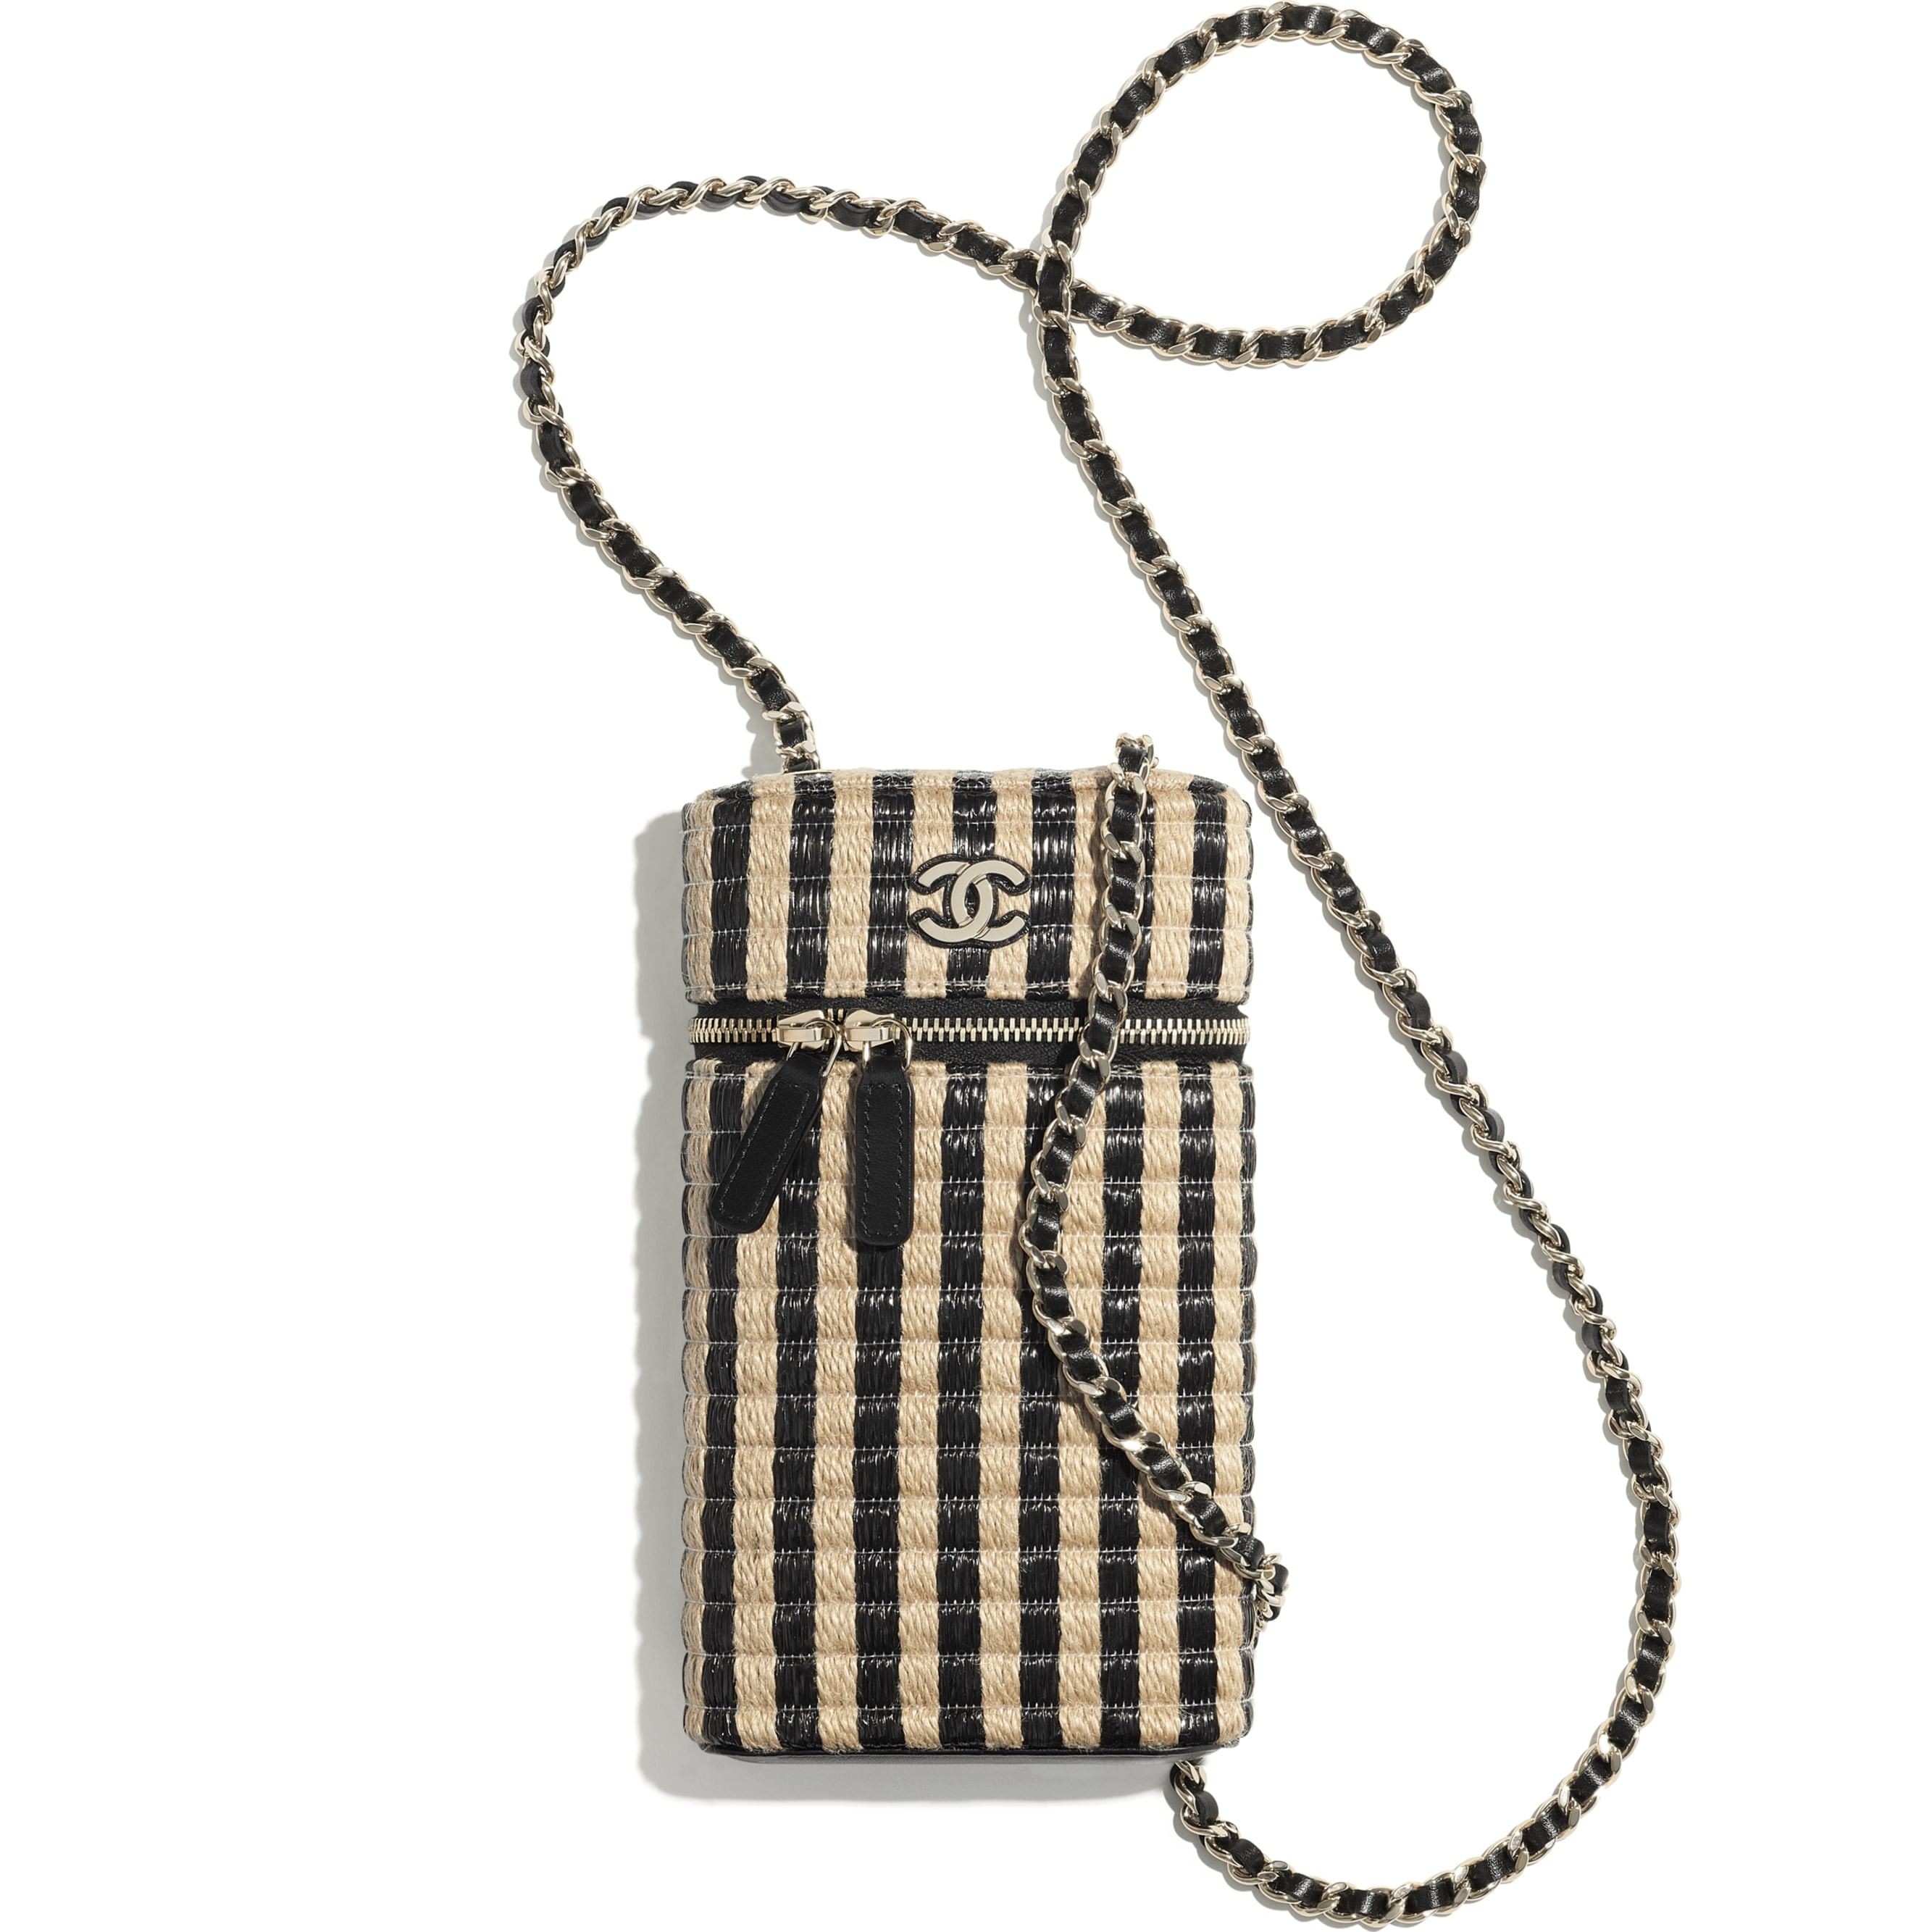 Vanity Phone Holder with Chain - Black & Beige - Raffia, Jute Thread & Gold-Tone Metal - CHANEL - Other view - see standard sized version